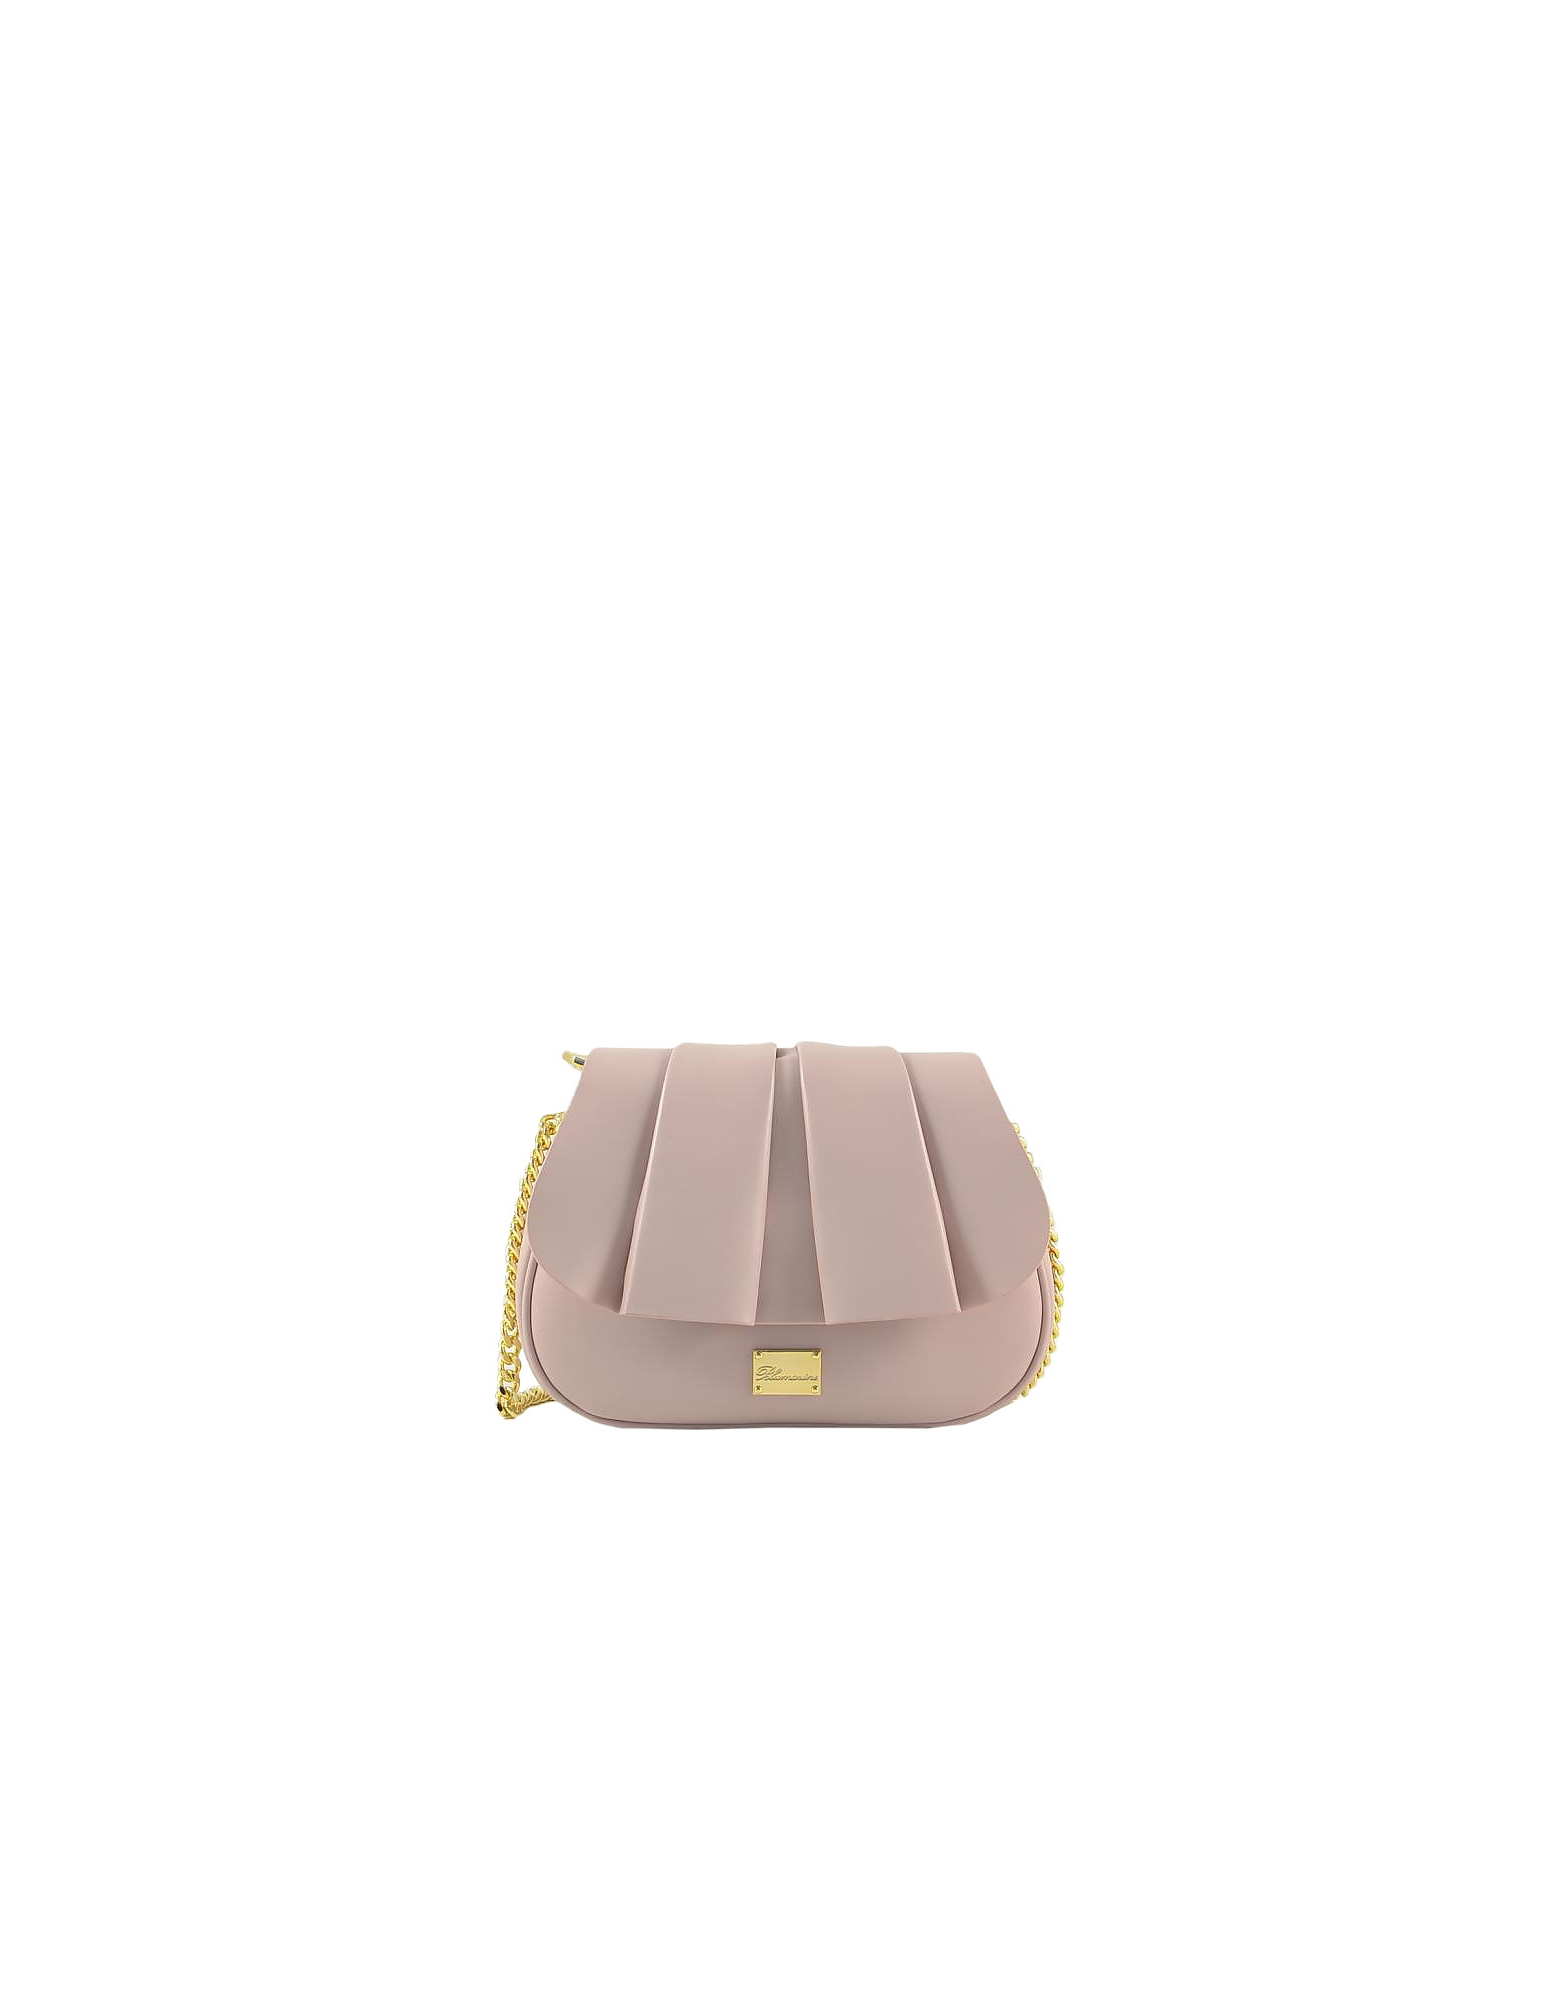 Blumarine Designer Handbags, Karen Light Pink Leather Shoulder Bag